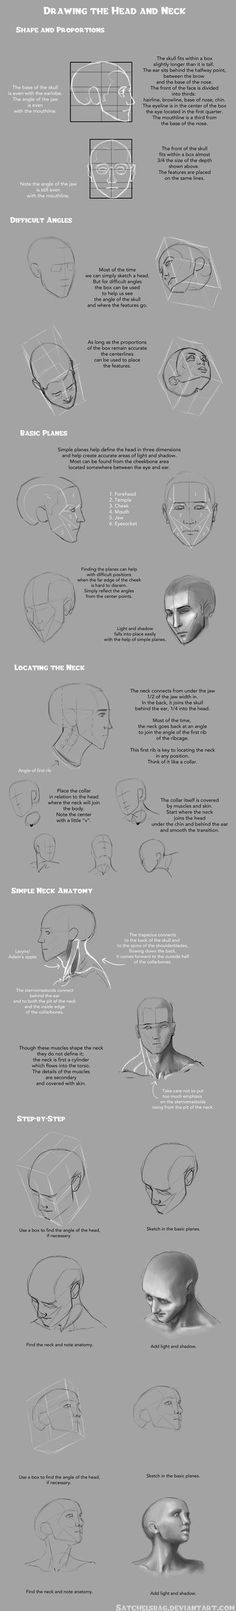 Drawing Heads and Necks Tutorial by satchelsbag